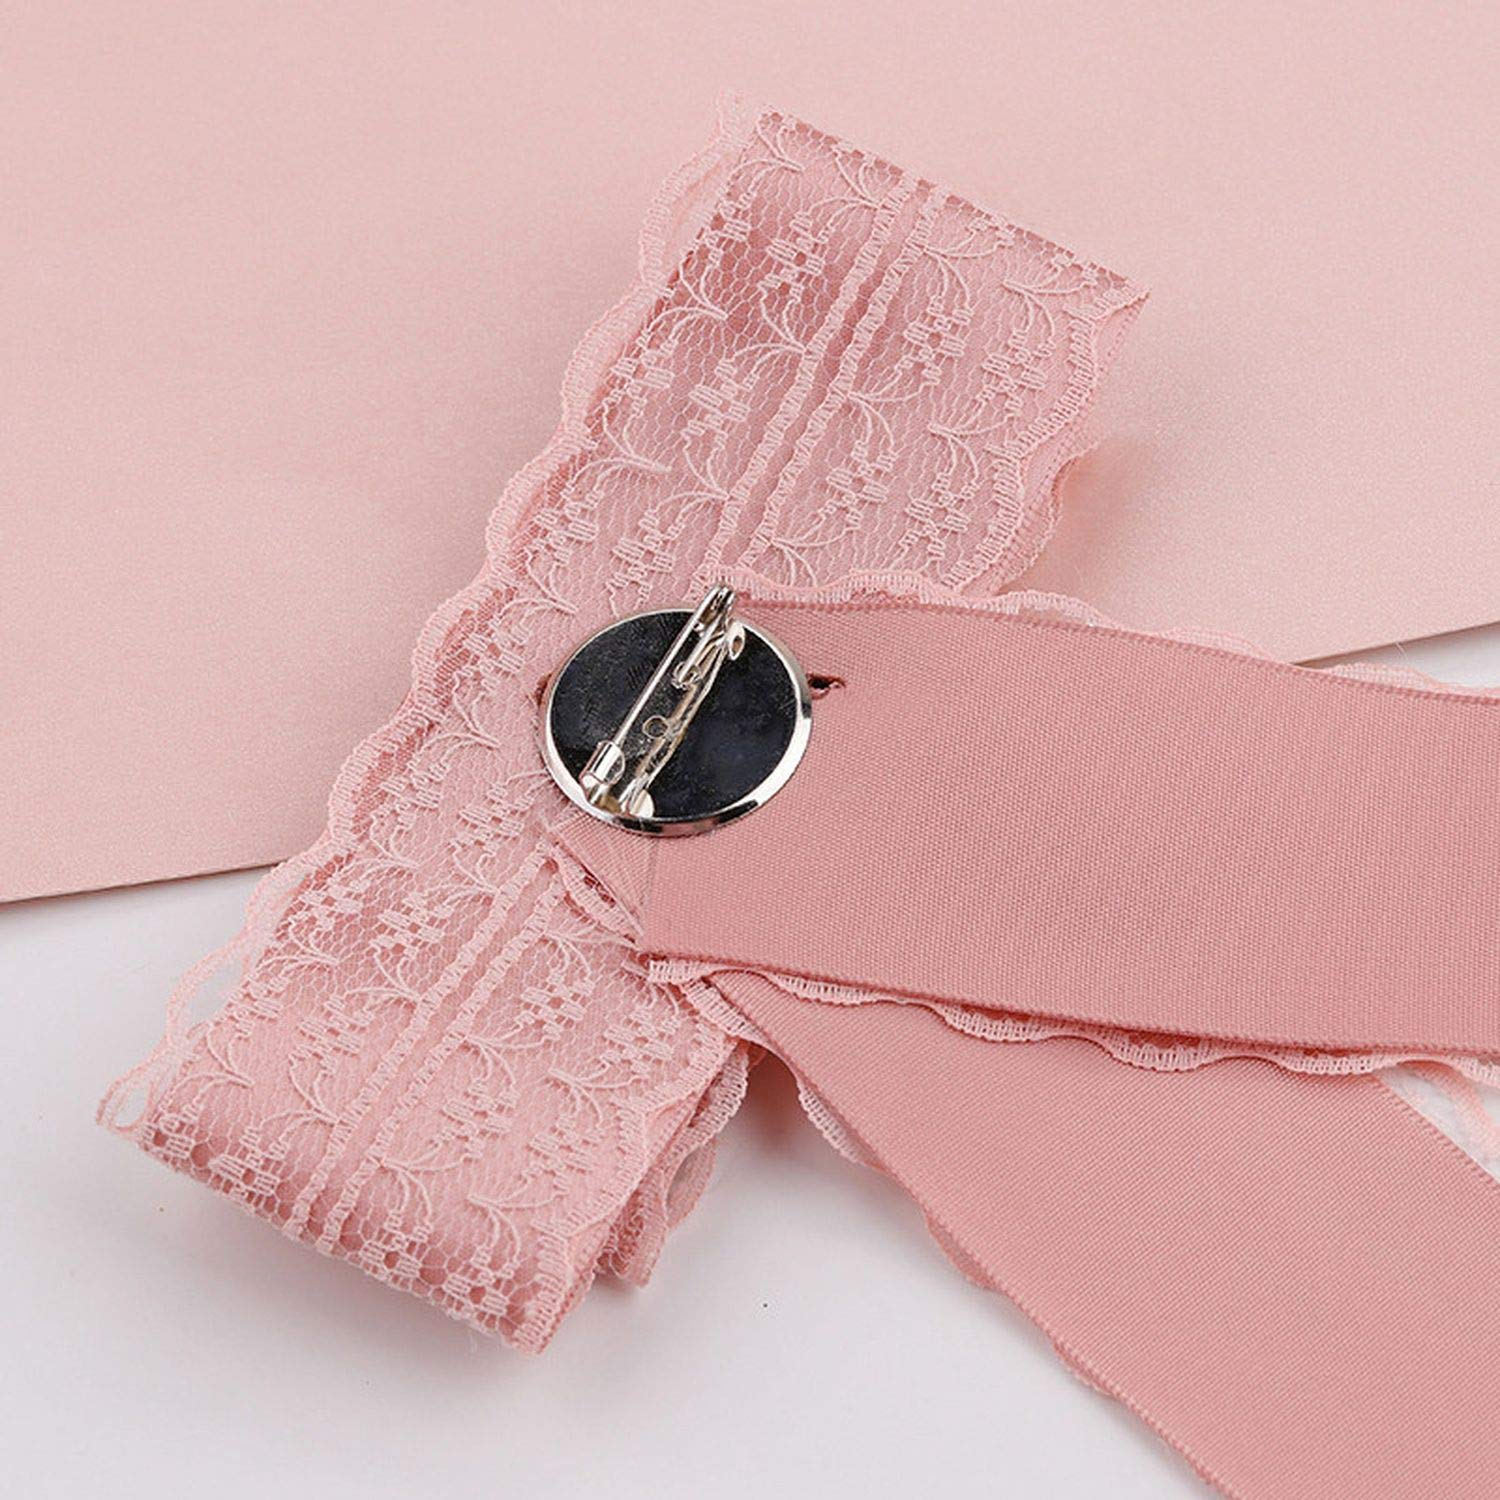 Crystal Sunflower Lace Ribbon Bow Brooch Pins Women Shirt Collar Neck Tie Bowknot Brooches for Women Jewelry